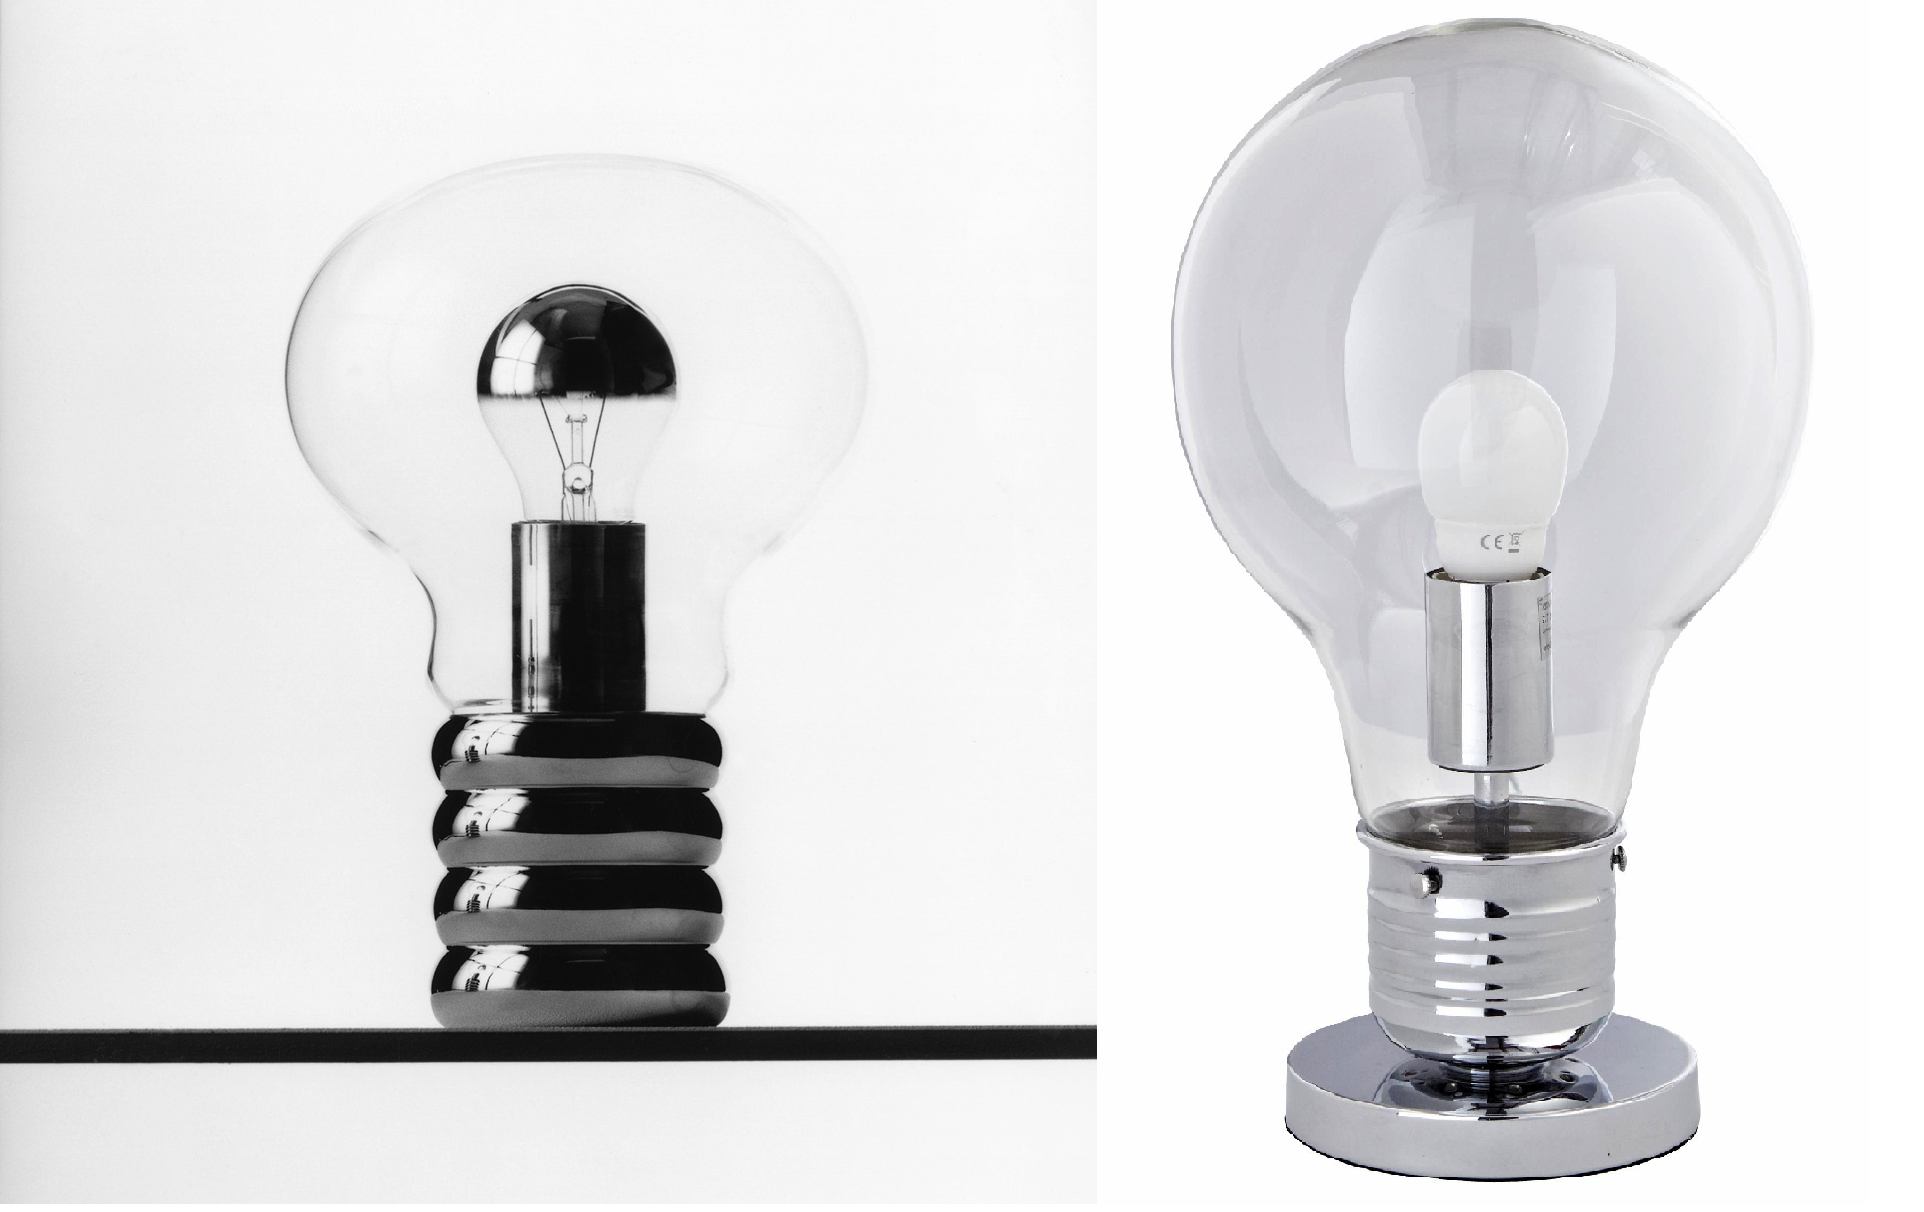 Lightbulb Shaped Lamp The Treasure Hunter Well Designed Quirky And Fun Interiors Homewares